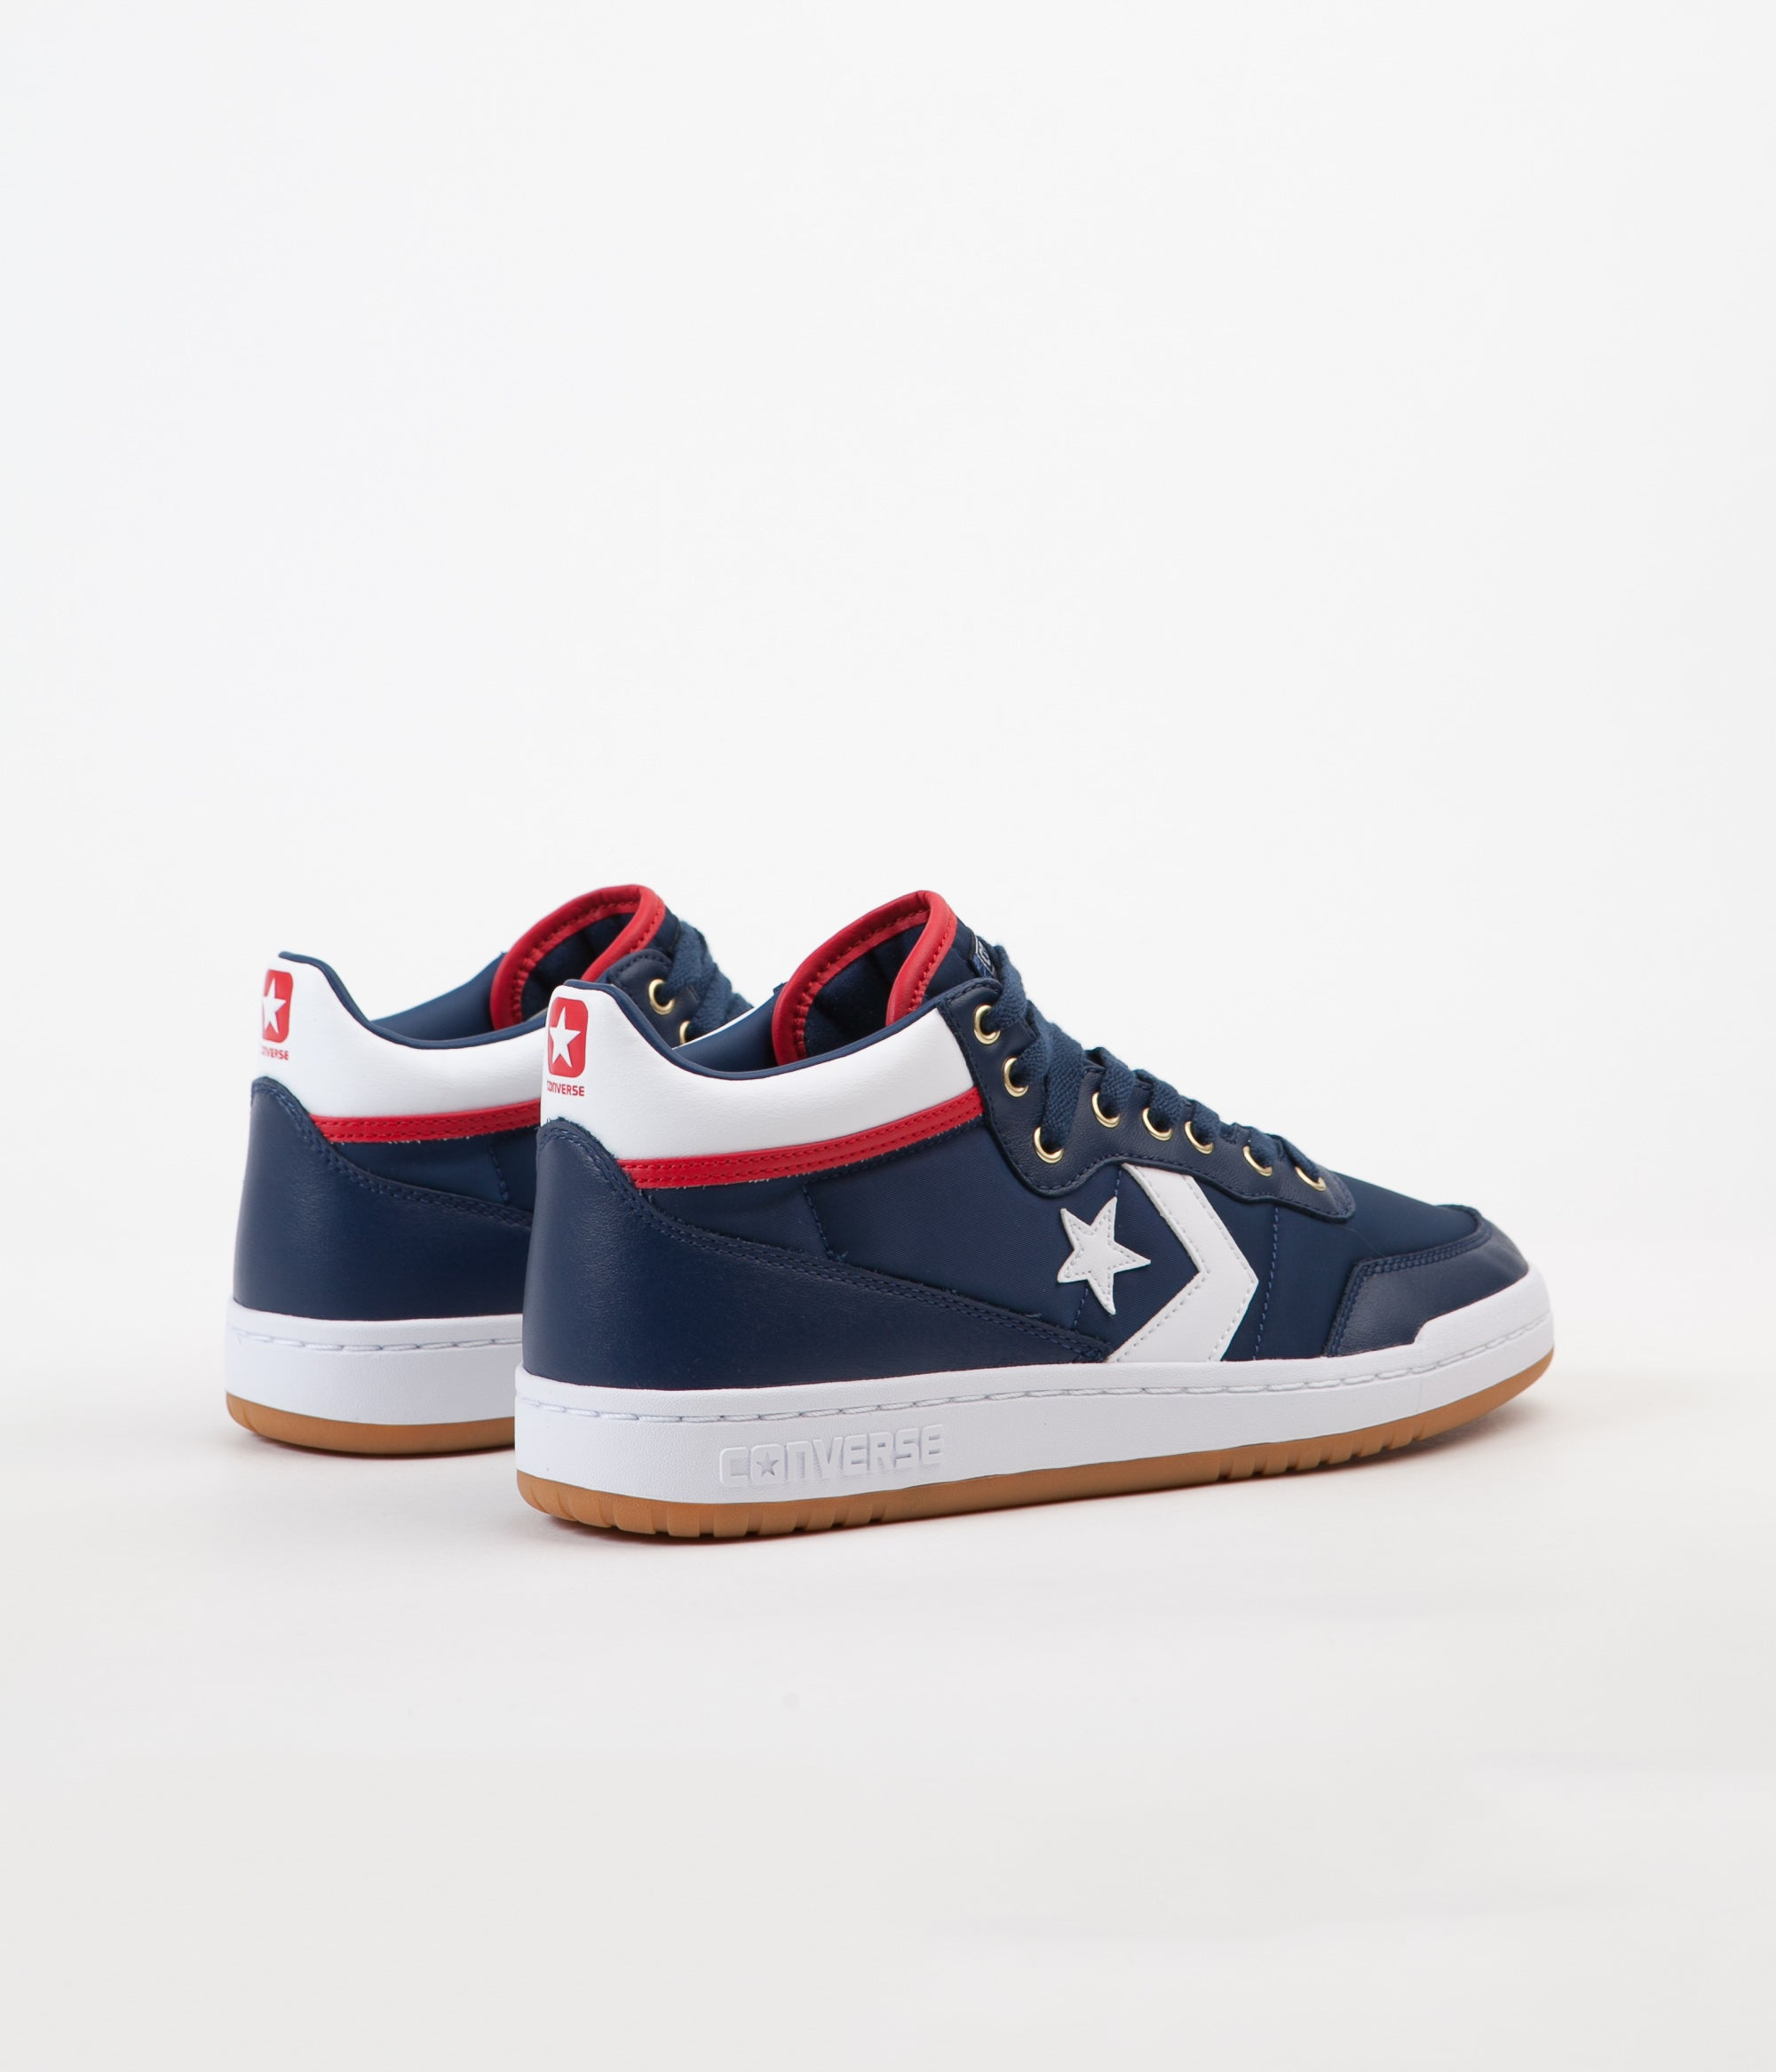 ... Converse Fastbreak Pro Mid Shoes - Navy   White   Enamel Red ... a698322d6